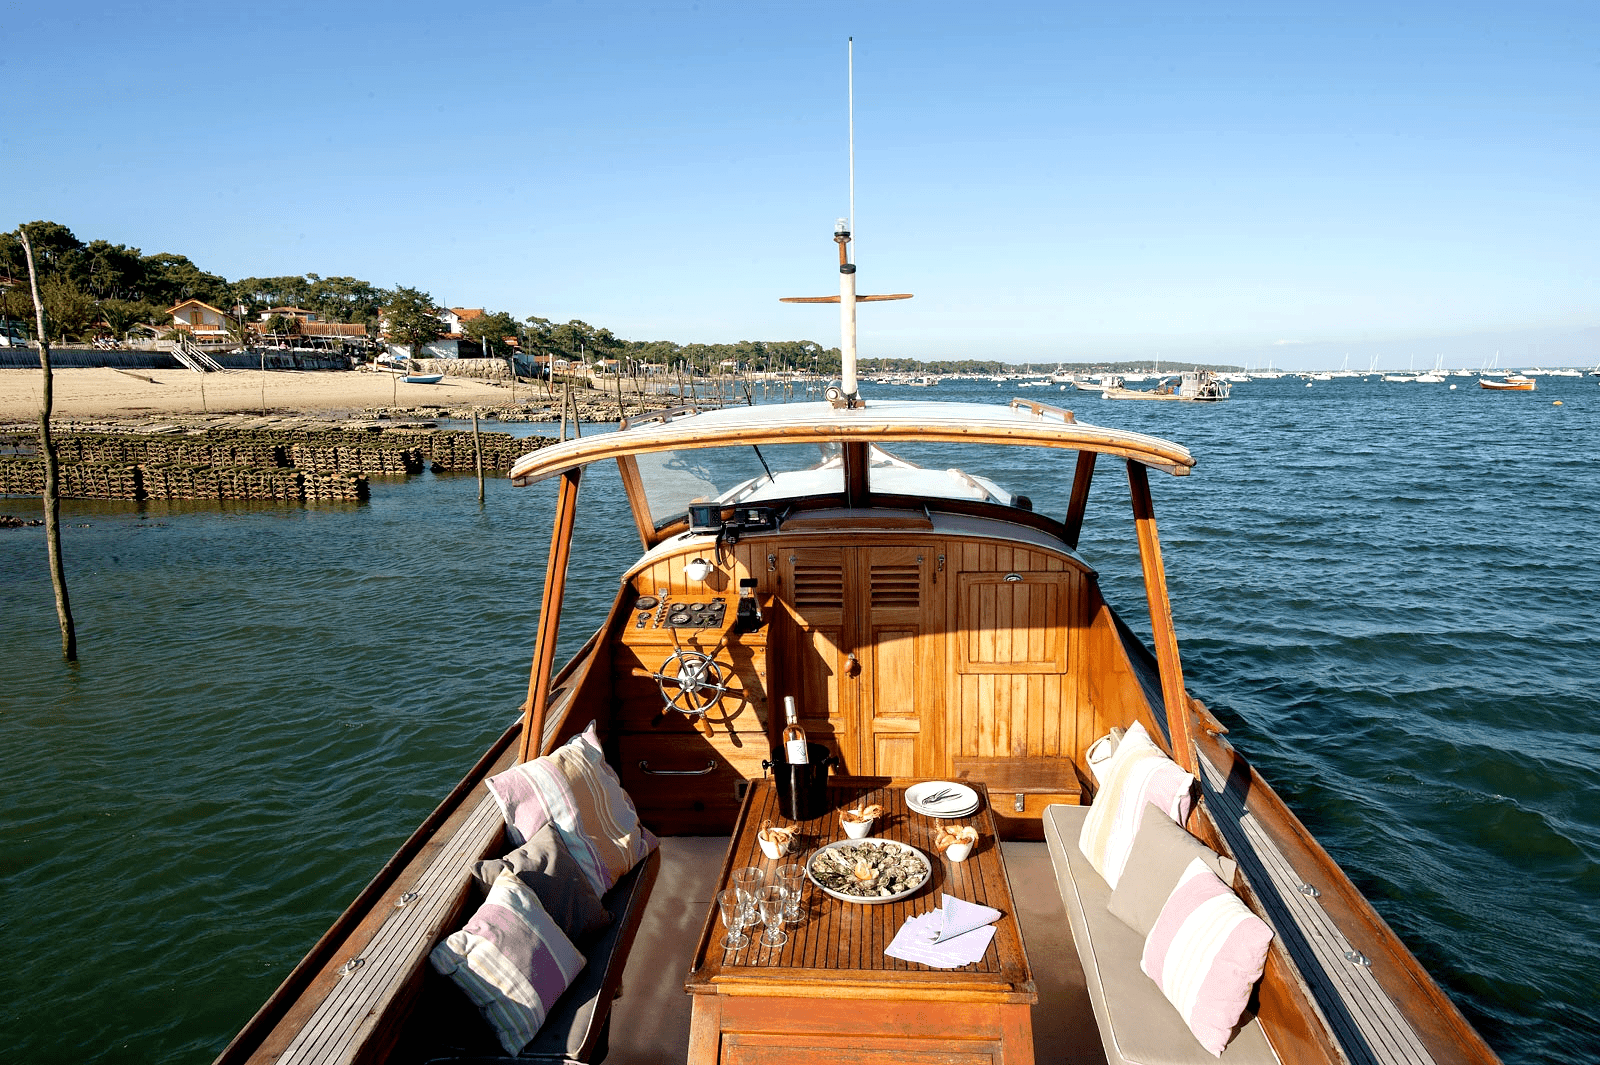 Gironde, Finistère, Annecy... 3 croisières originales made in France